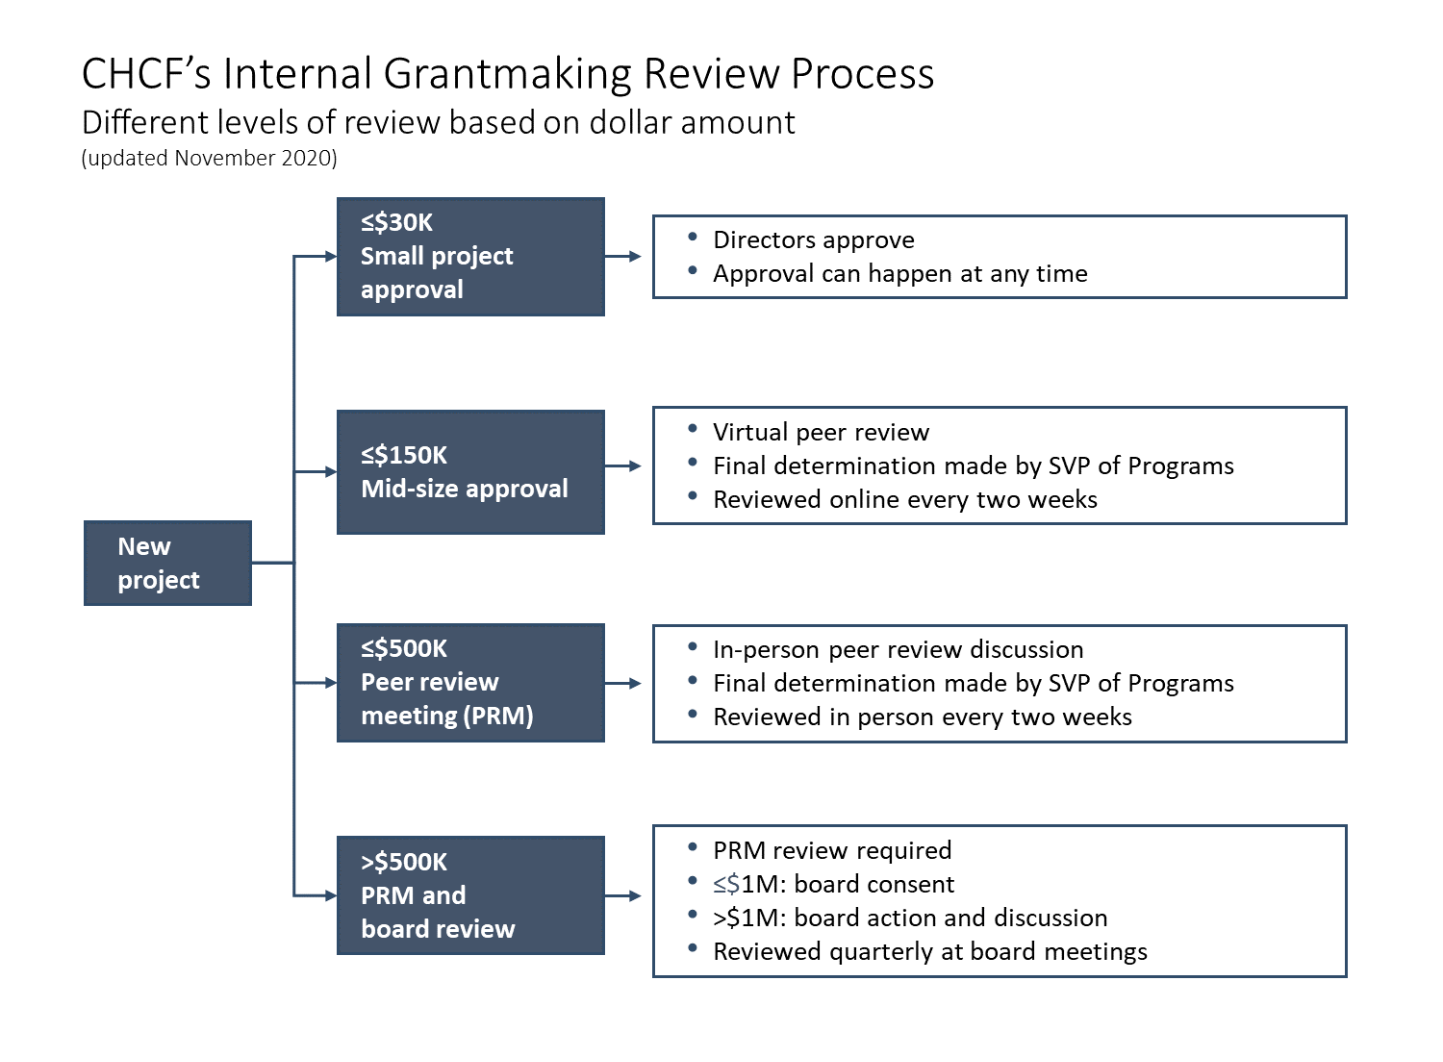 This flowchart outlines CHCF's internal grantmaking review process. There are different levels of review based on dollar amount of the grant.